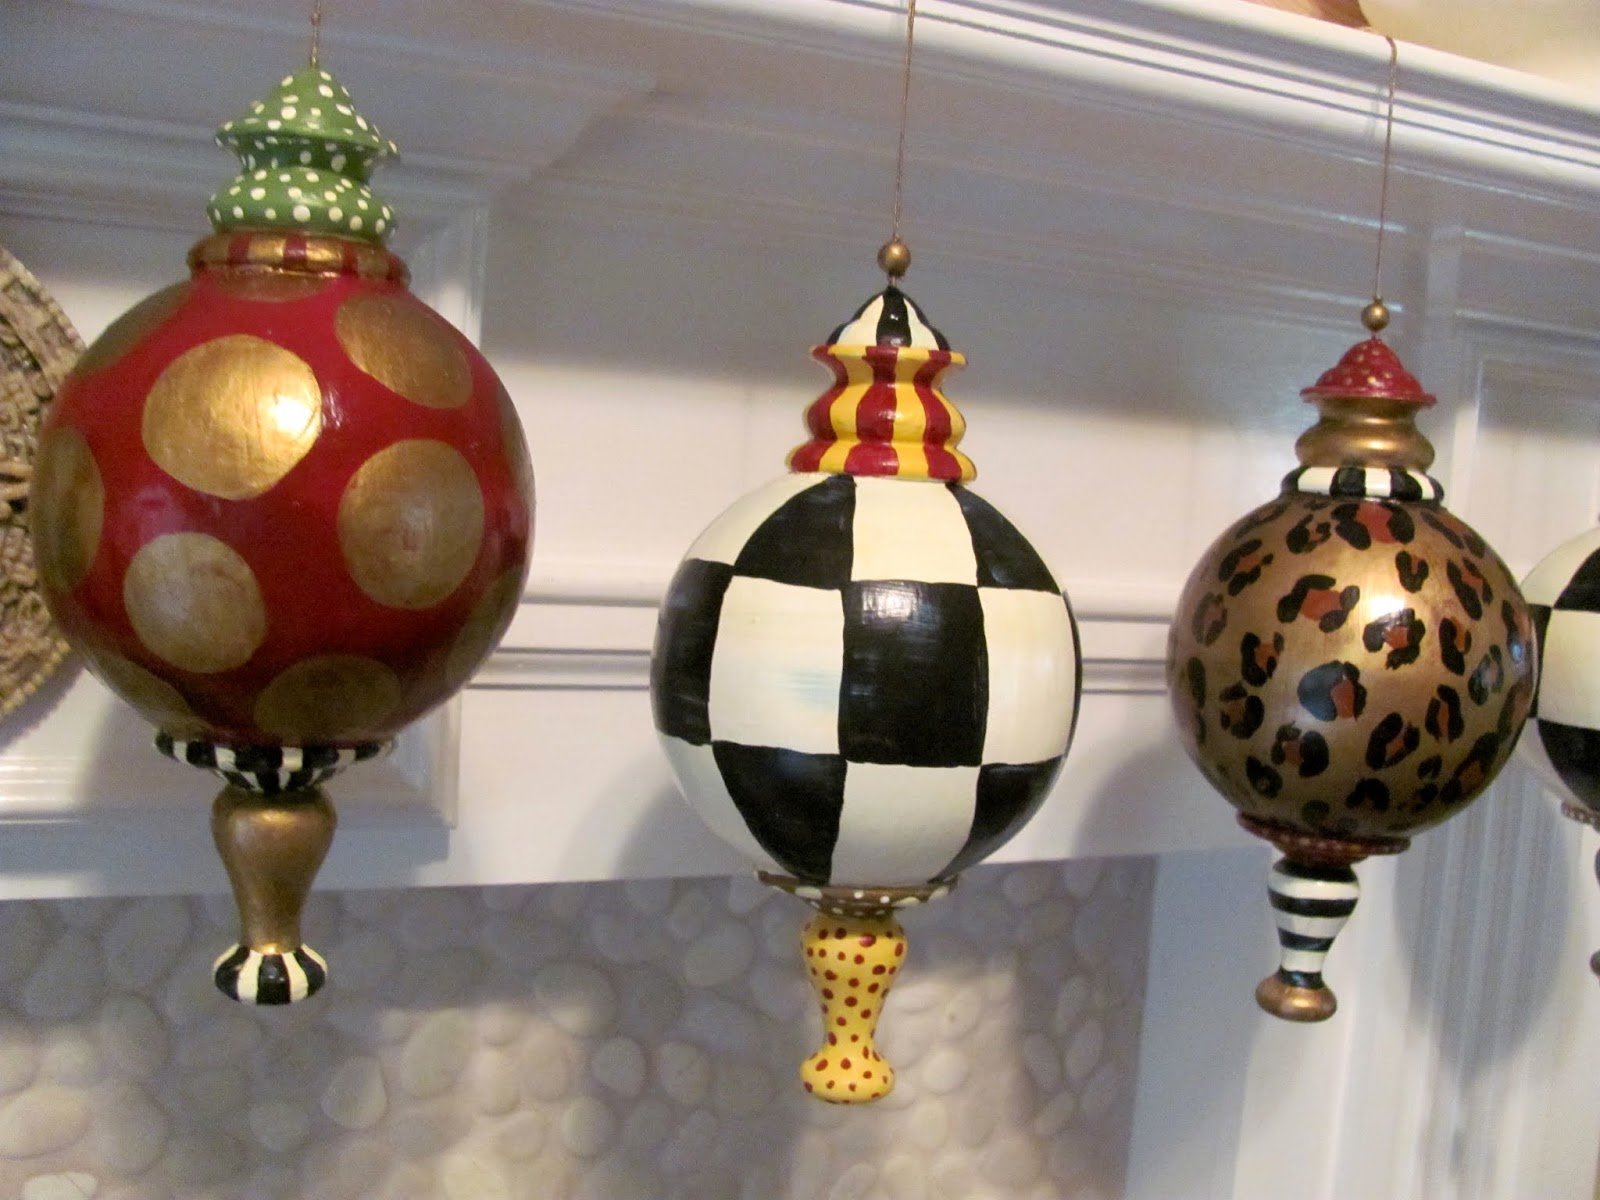 Large ornaments - Large Hand Painted Ornaments Leopard Dots And Checks